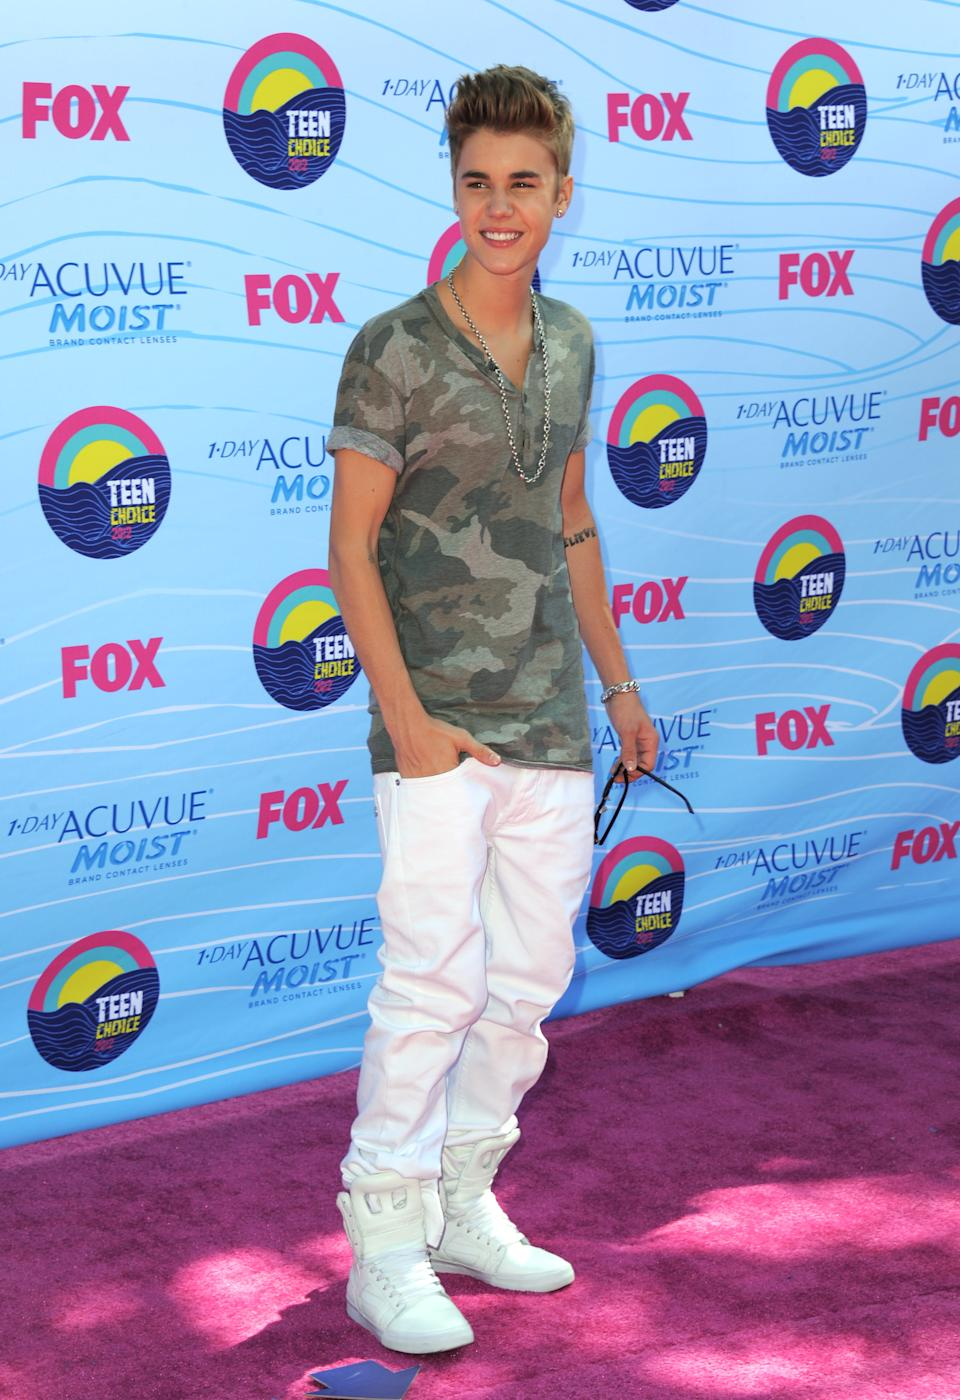 Justin Bieber arrives at the Teen Choice Awards on Sunday, July 22, 2012, in Universal City, Calif. (Photo by Jordan Strauss/Invision/AP)